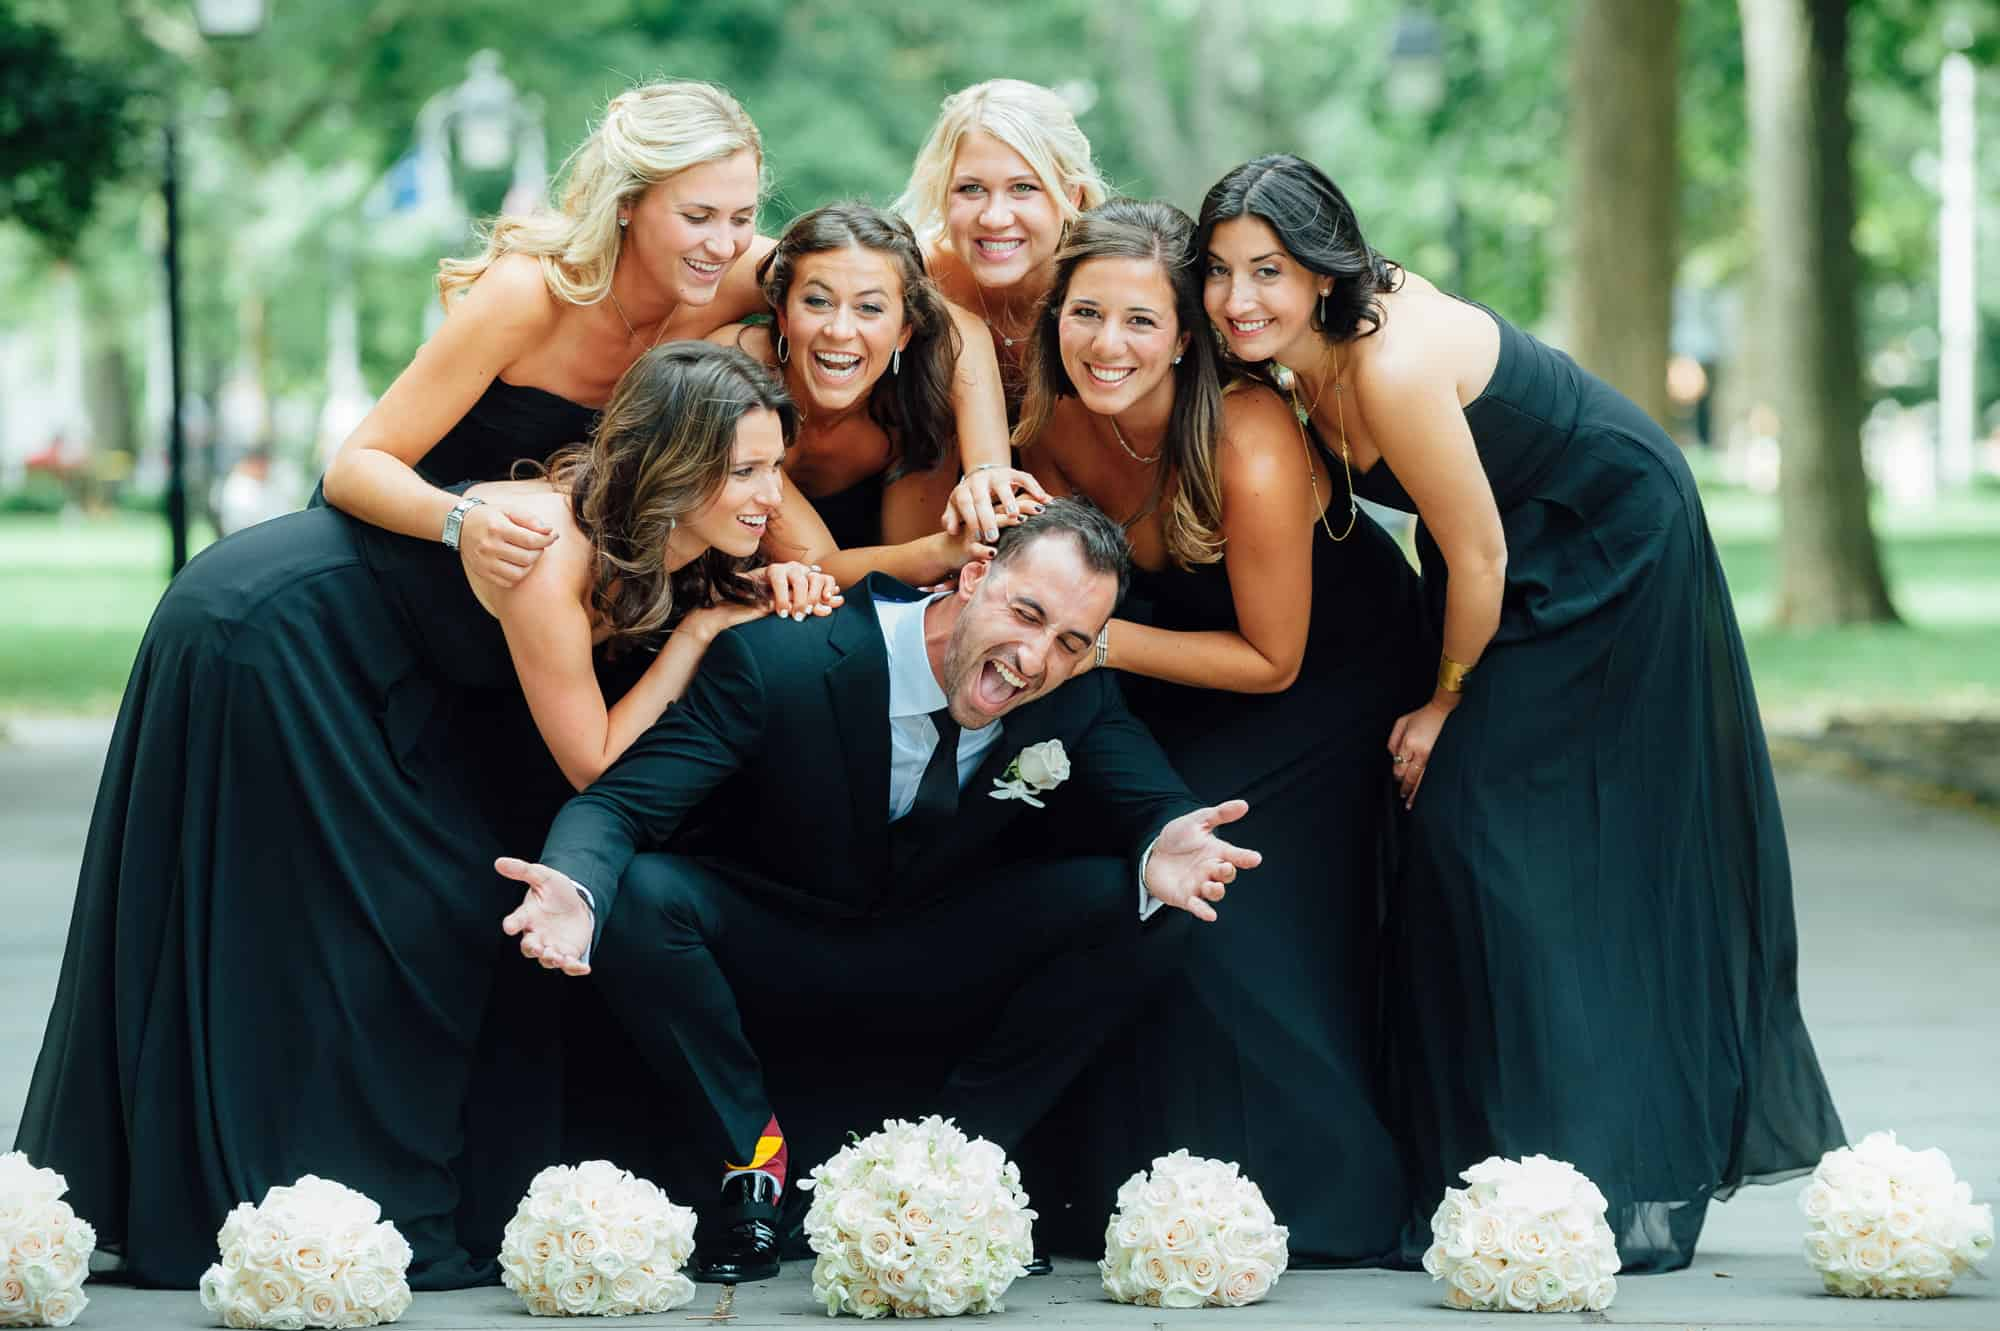 Bridemaids beating up groom